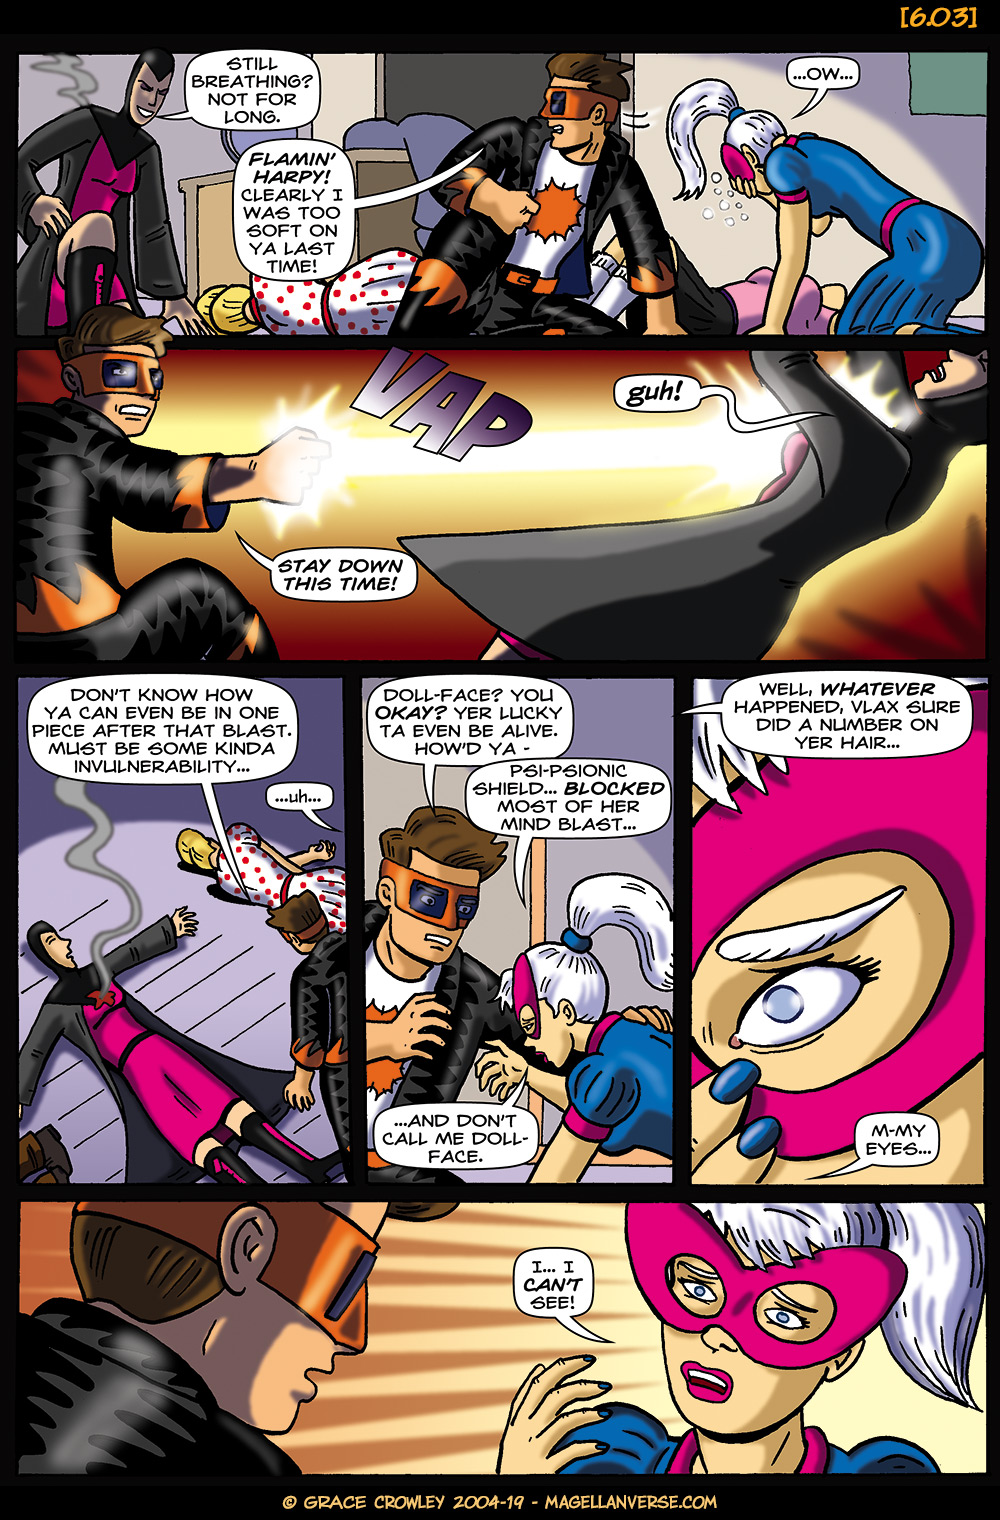 Page 6.03